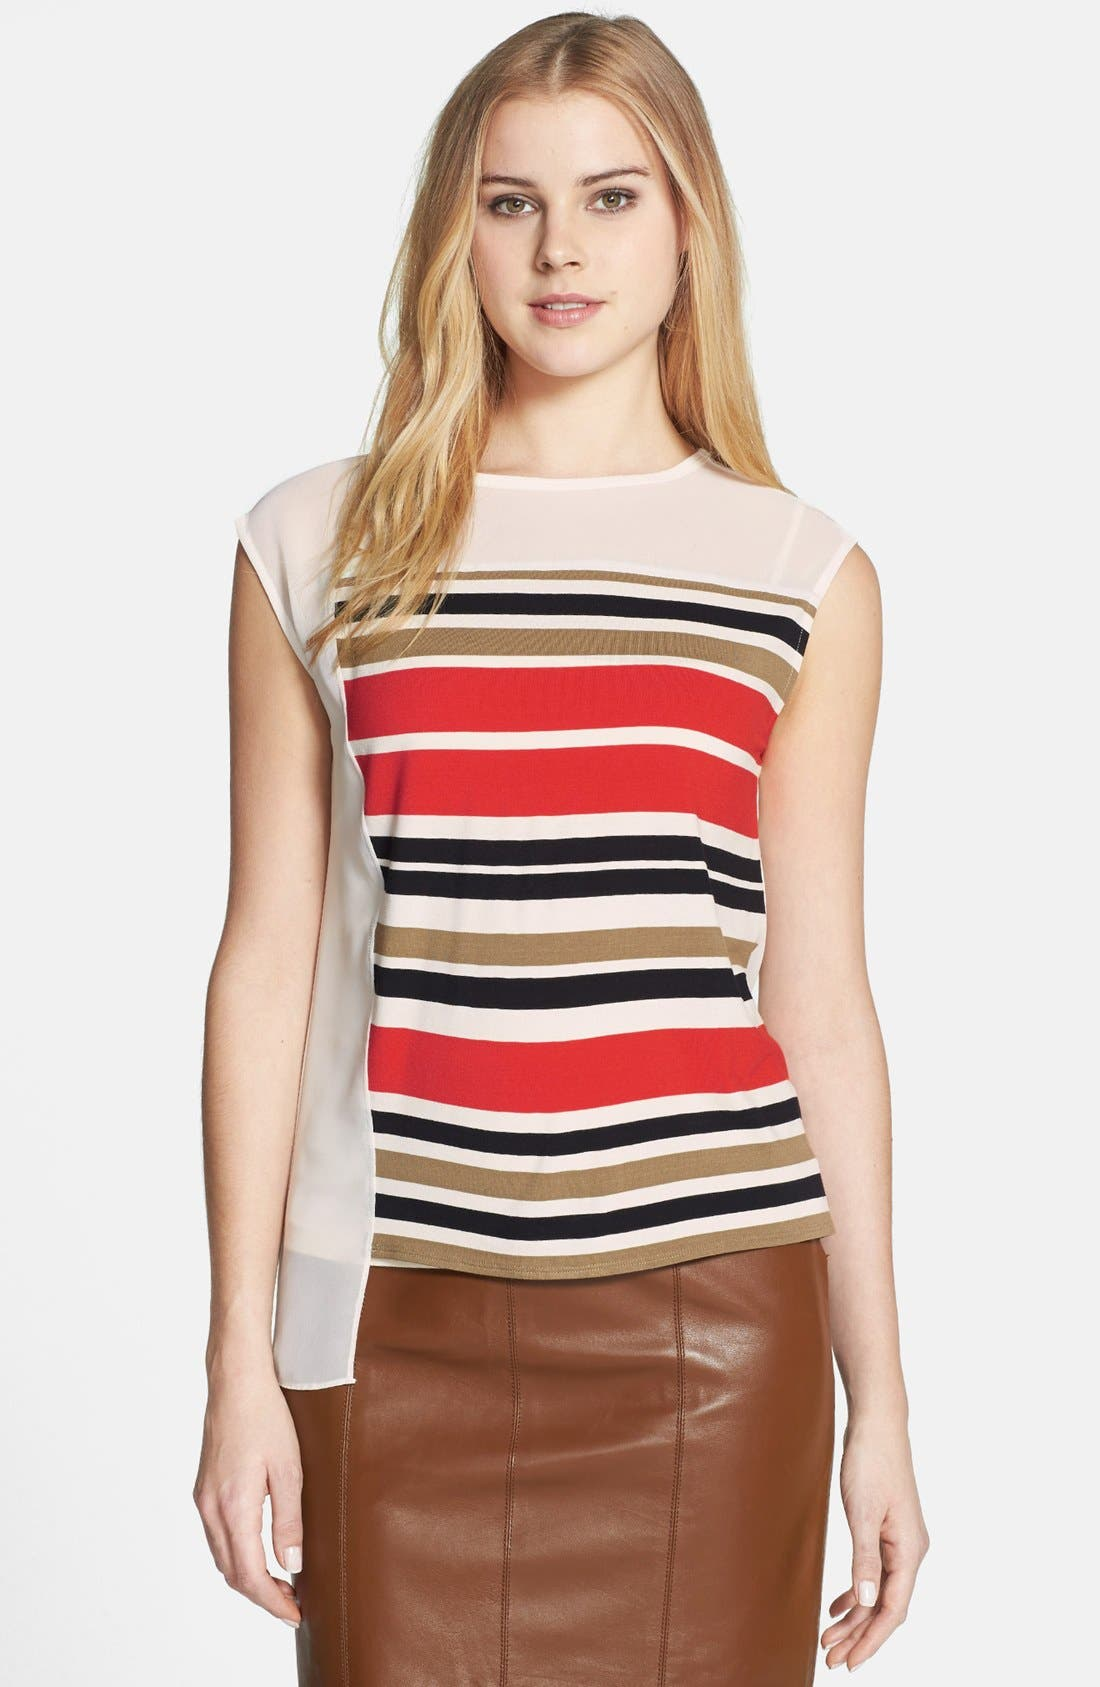 Main Image - Vince Camuto 'Legacy Stripe' Mixed Media Blocked Top